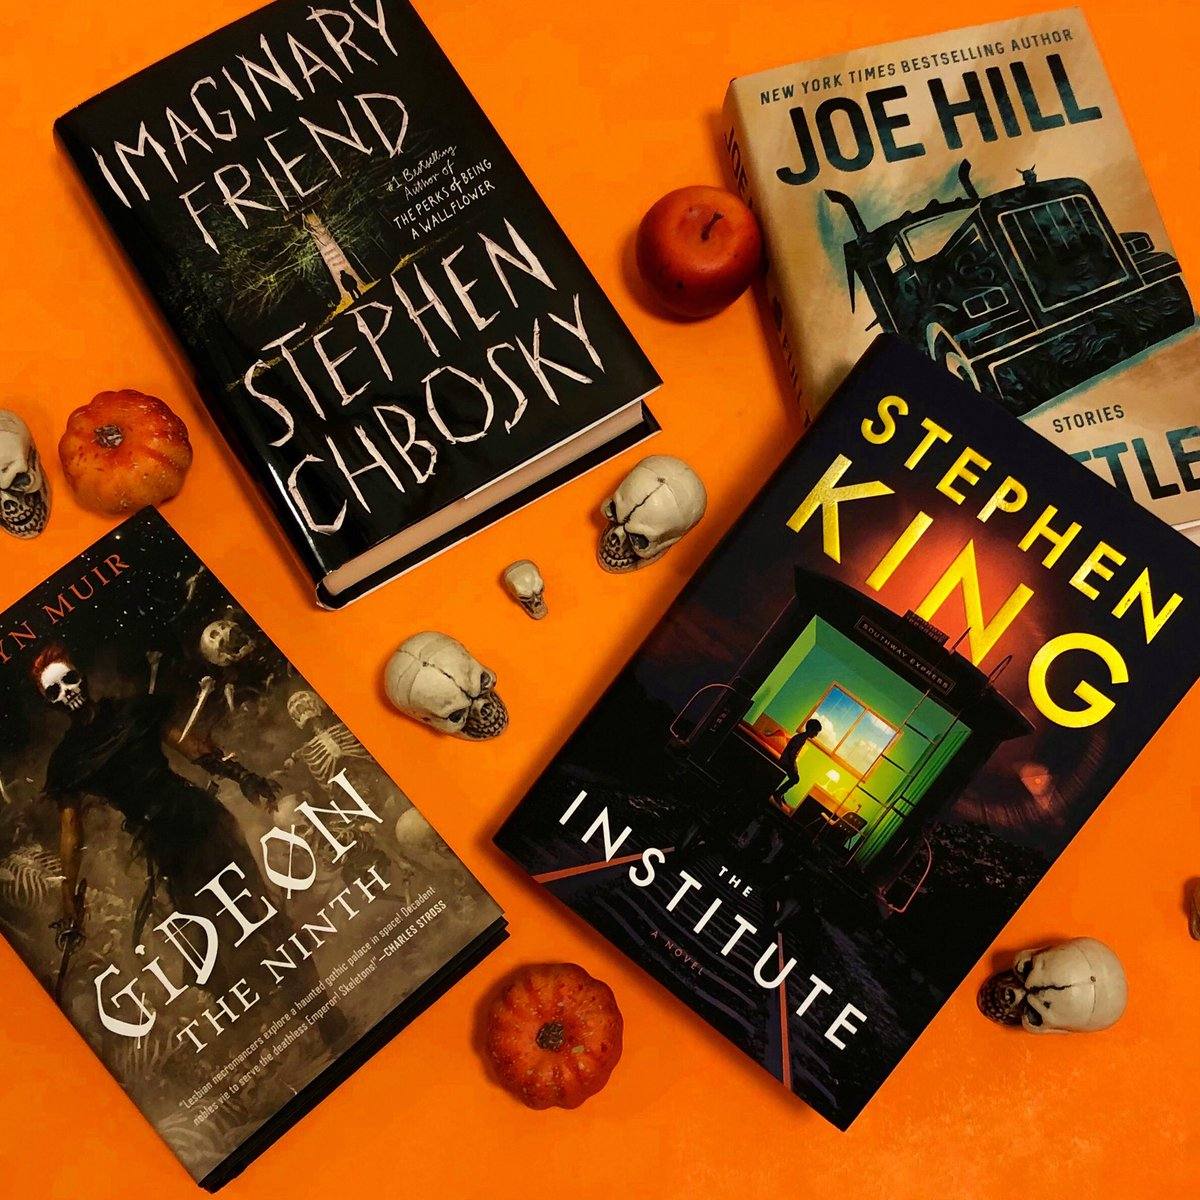 #Halloween is coming and we've got new scary books for the spooky season! 💀🎃👻